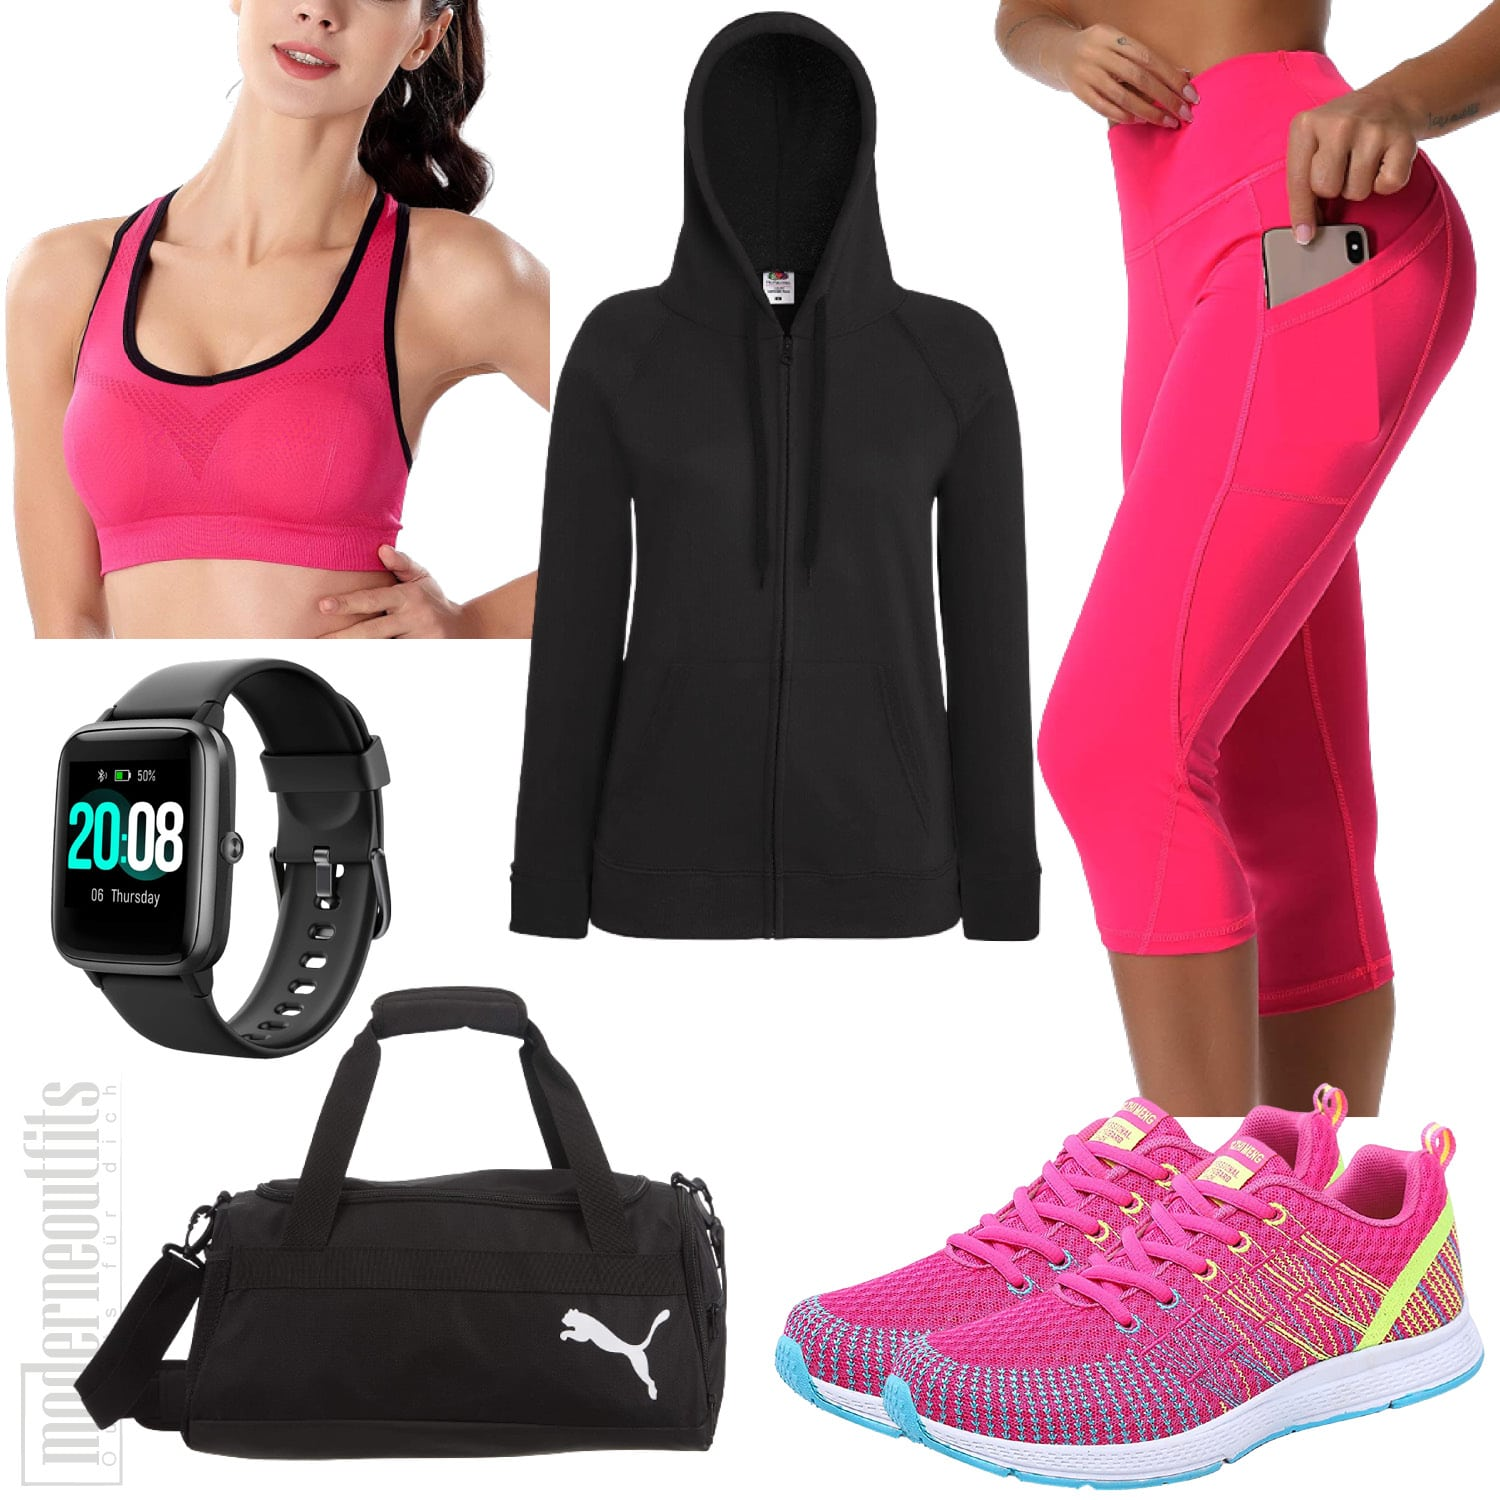 Yoga Outfit für Damen in Pink mit Leggings Top